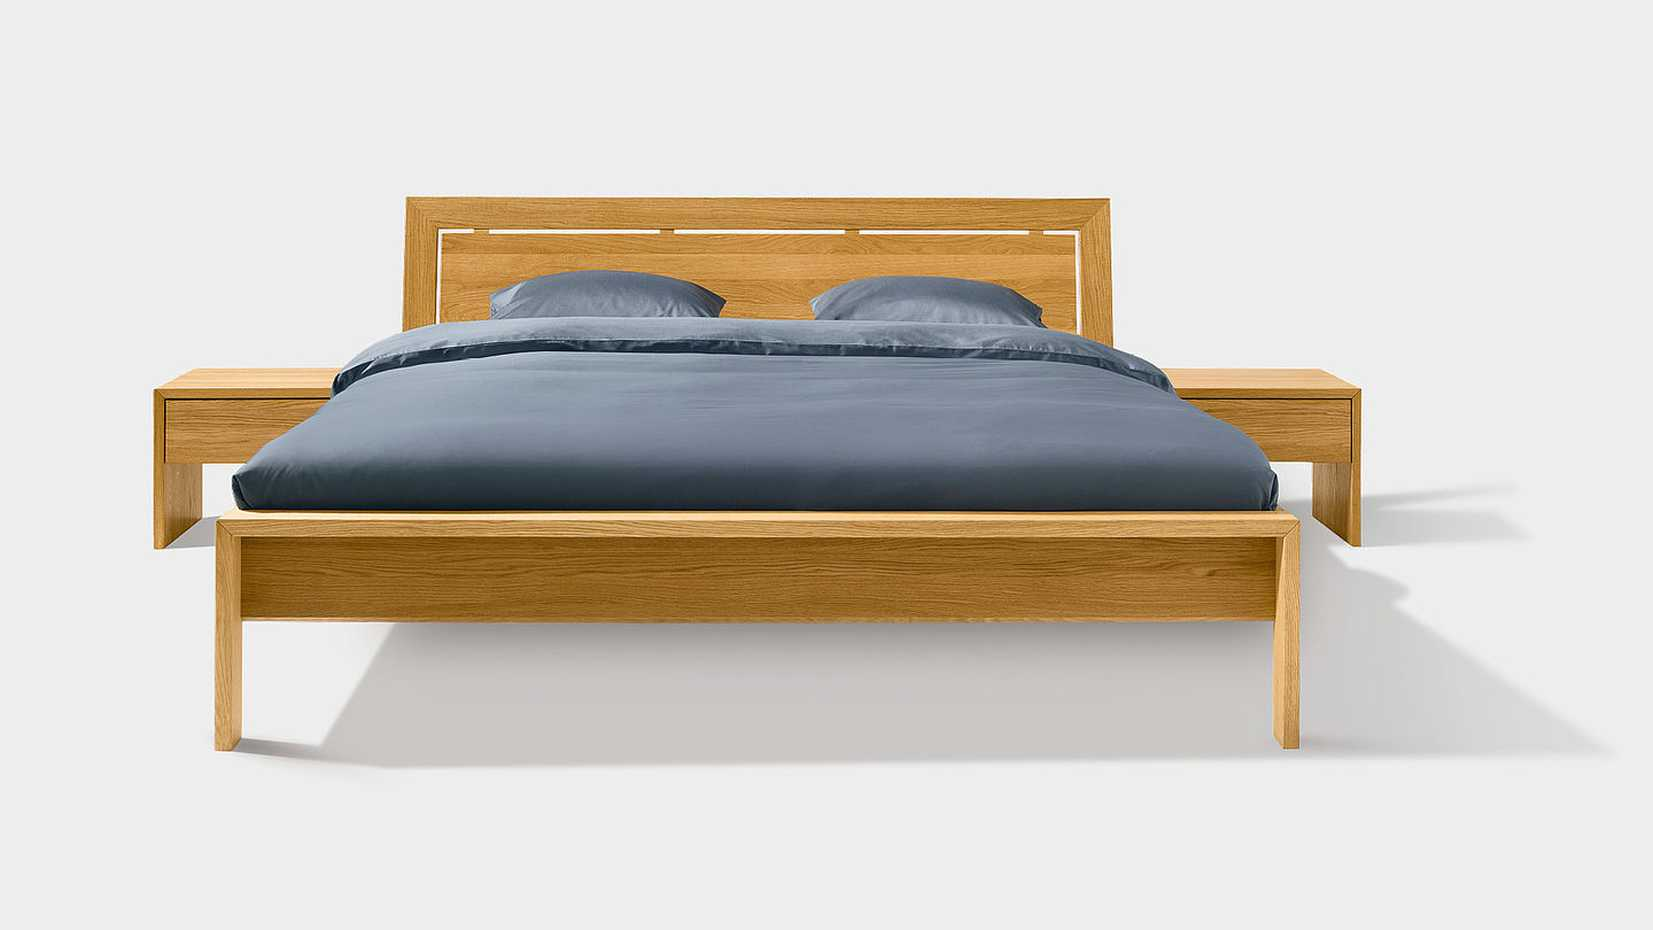 Lunetto Bed by Team 7 product image 4